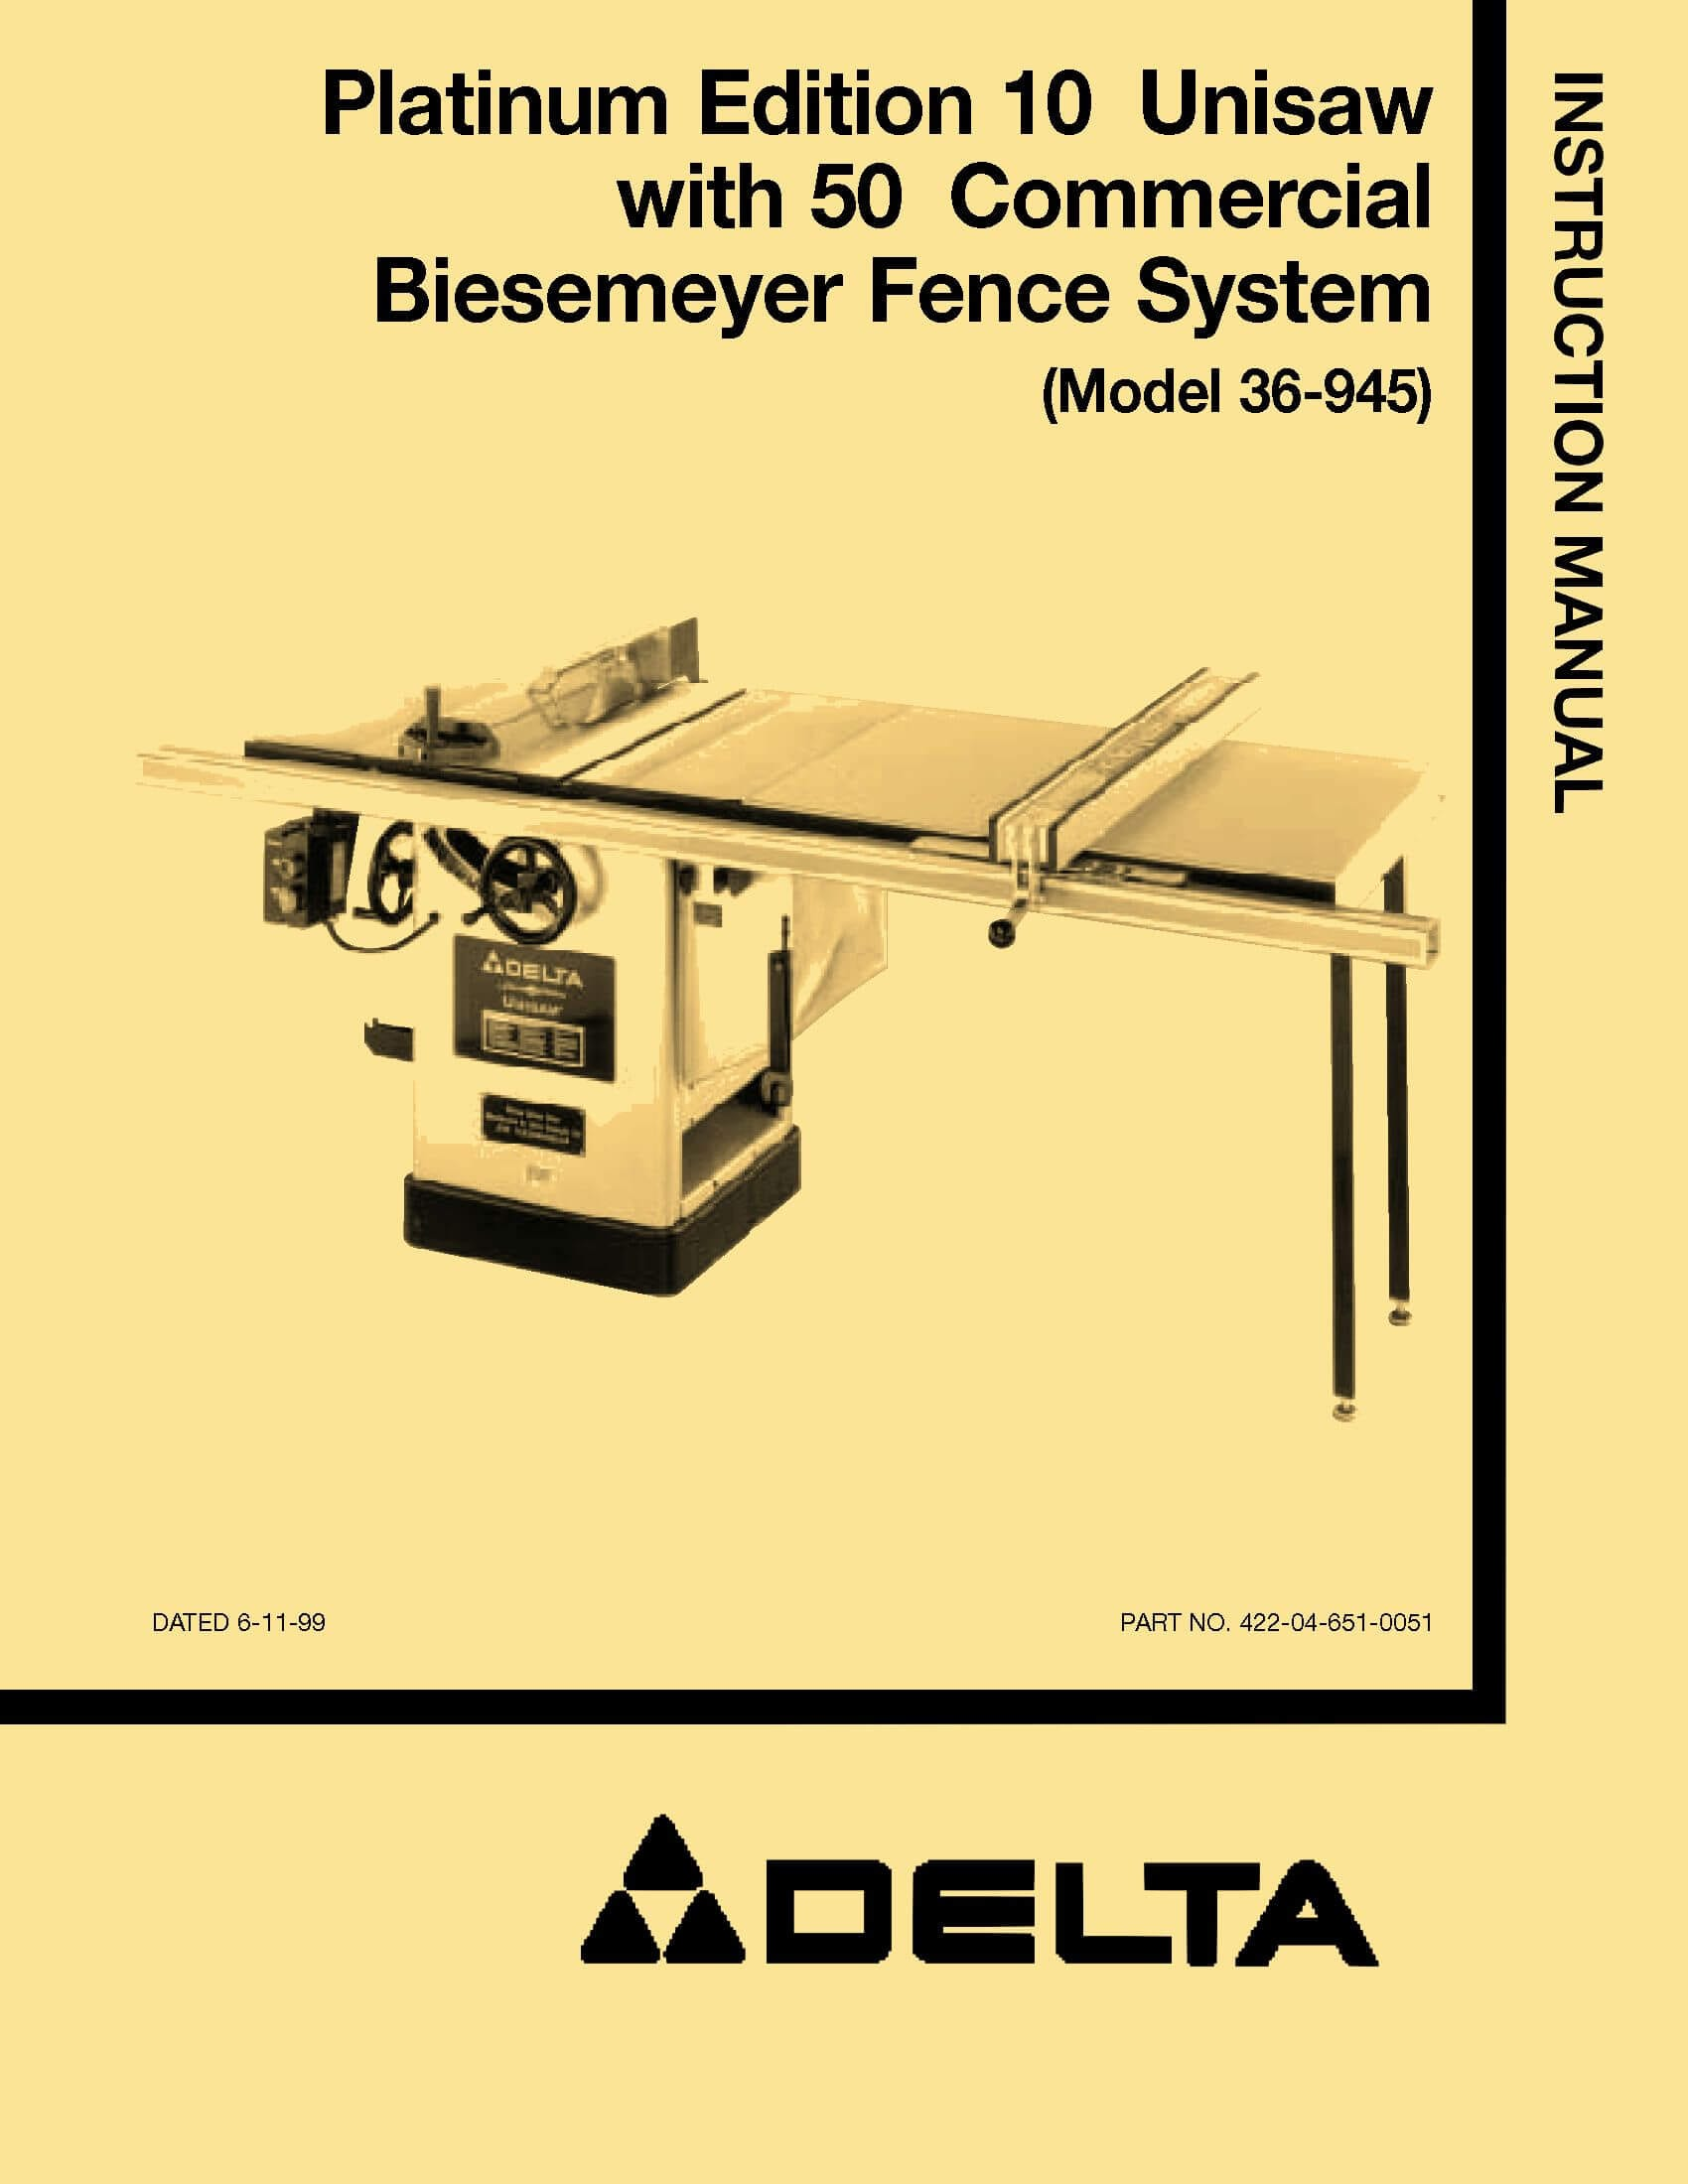 Table Saw Wiring Manual Real Diagram Craftsman Delta 36 945 10 Quot Unisaw Instructions Parts